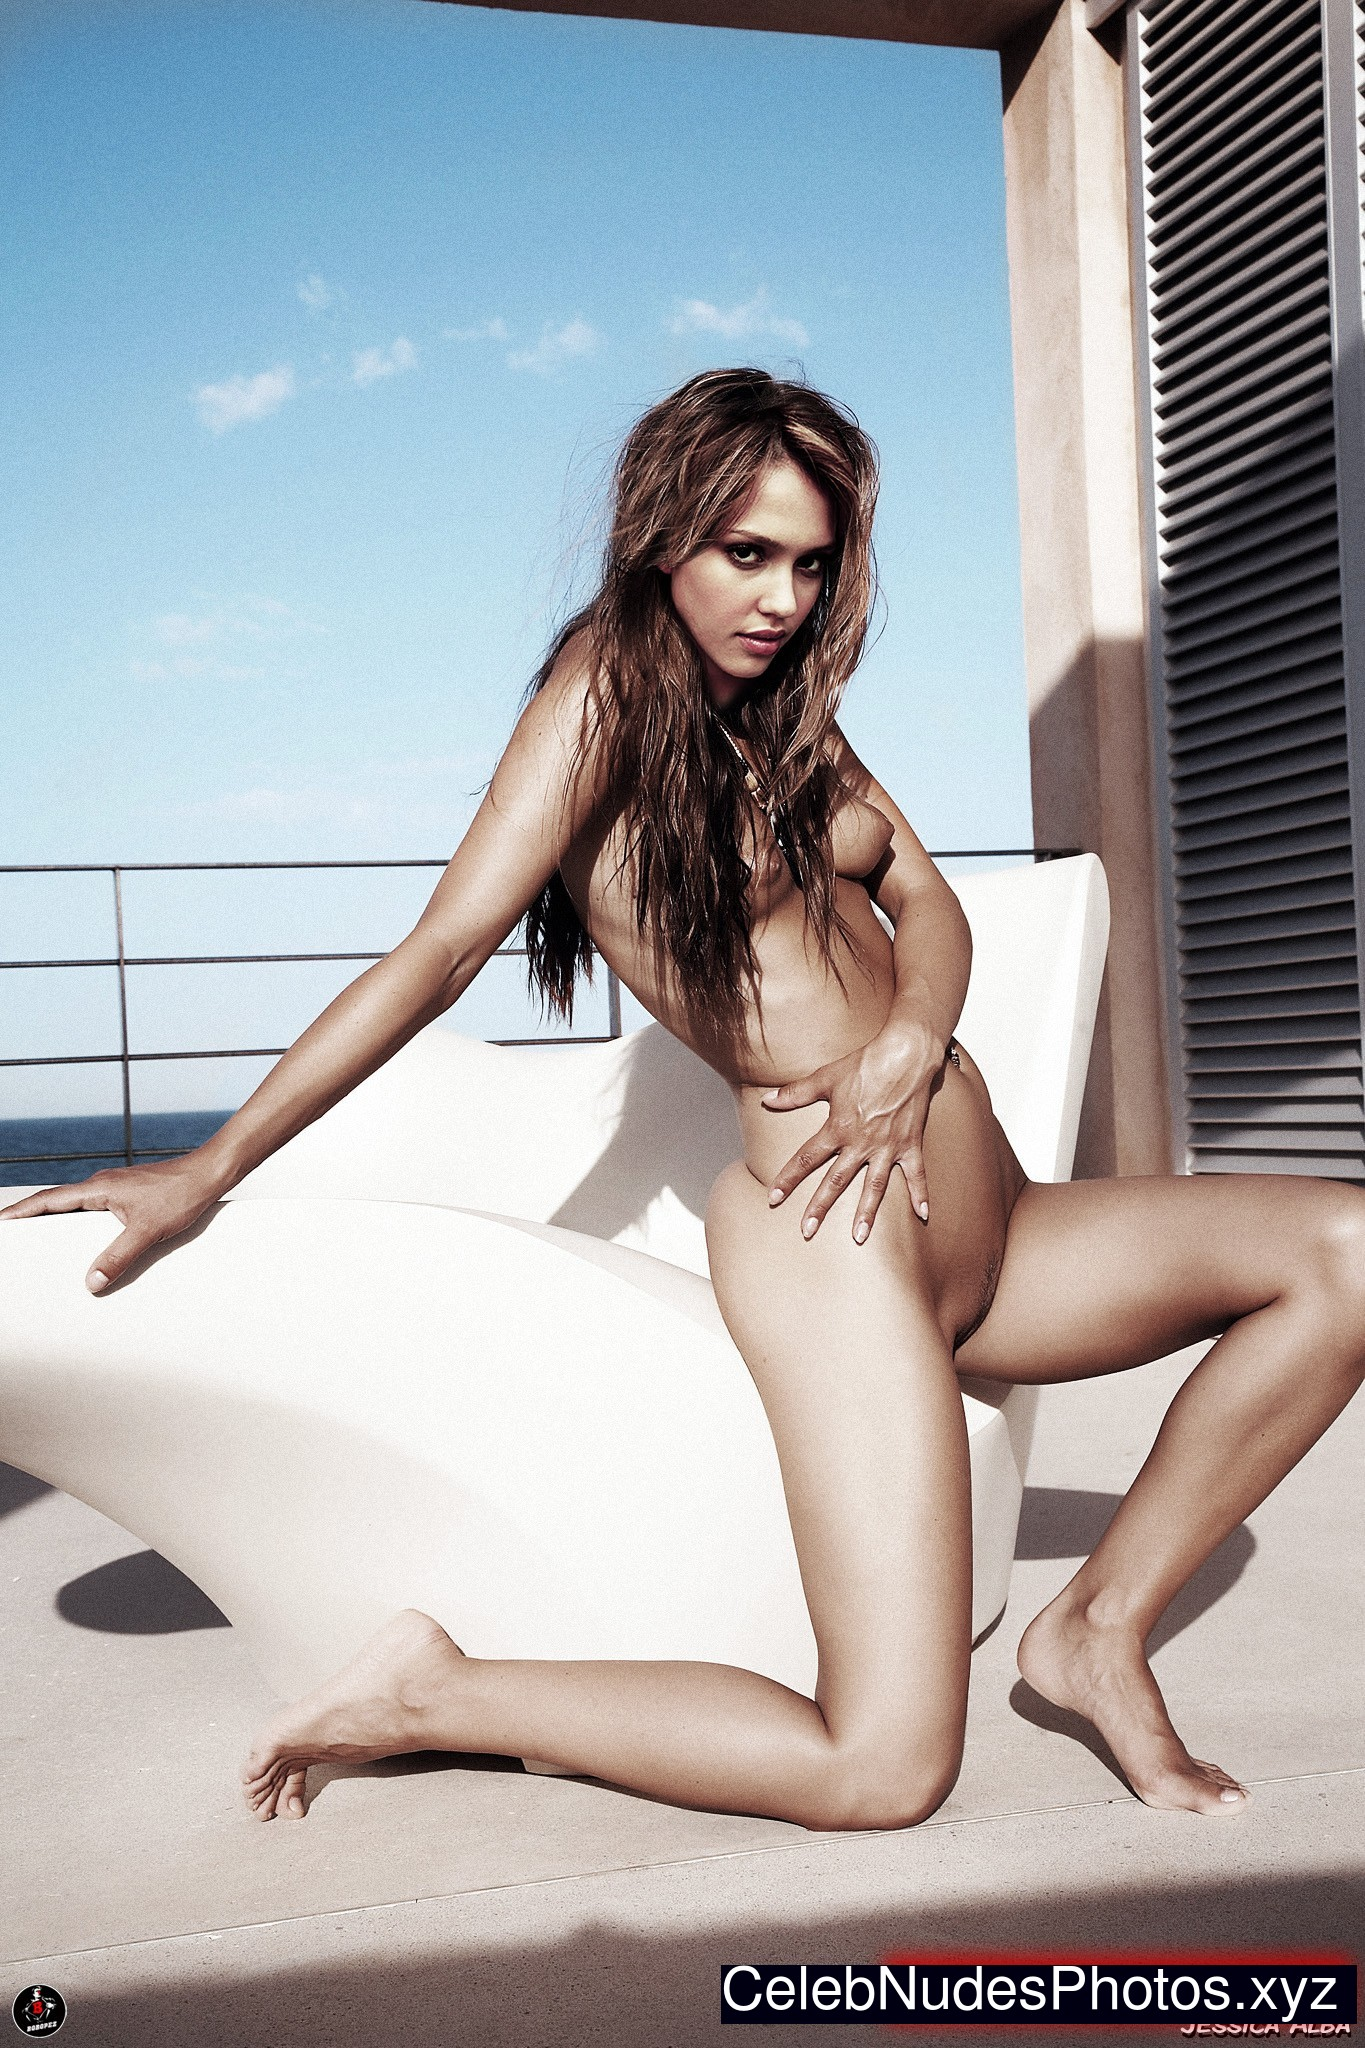 Will your Jessica alba naked so real remarkable, rather